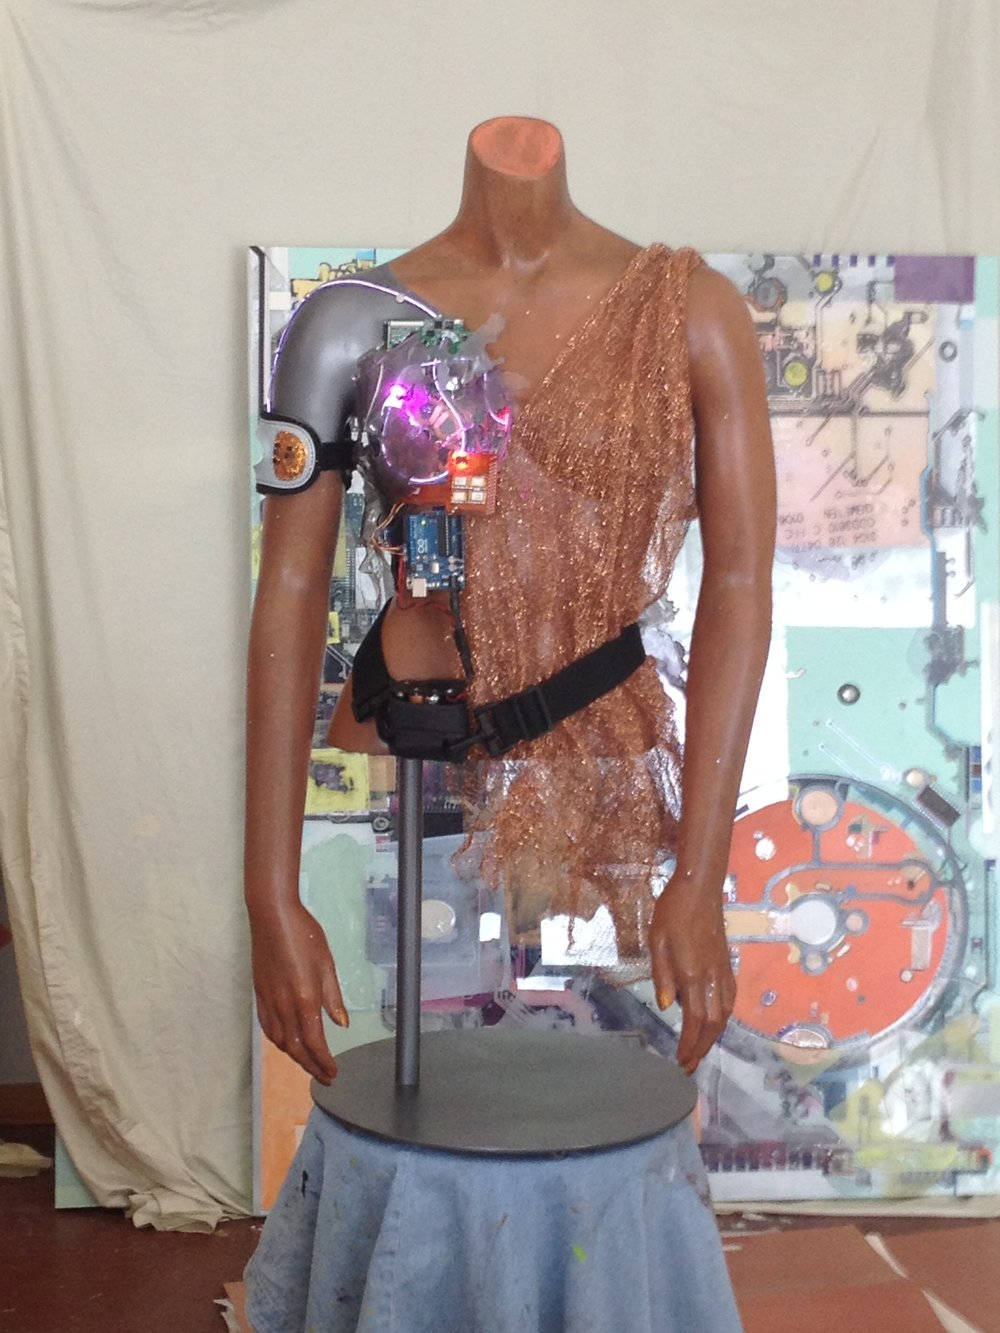 Warrior - Reclaimed torso, copper netting, found medical utilities, LEDs and battery powered microprocessor